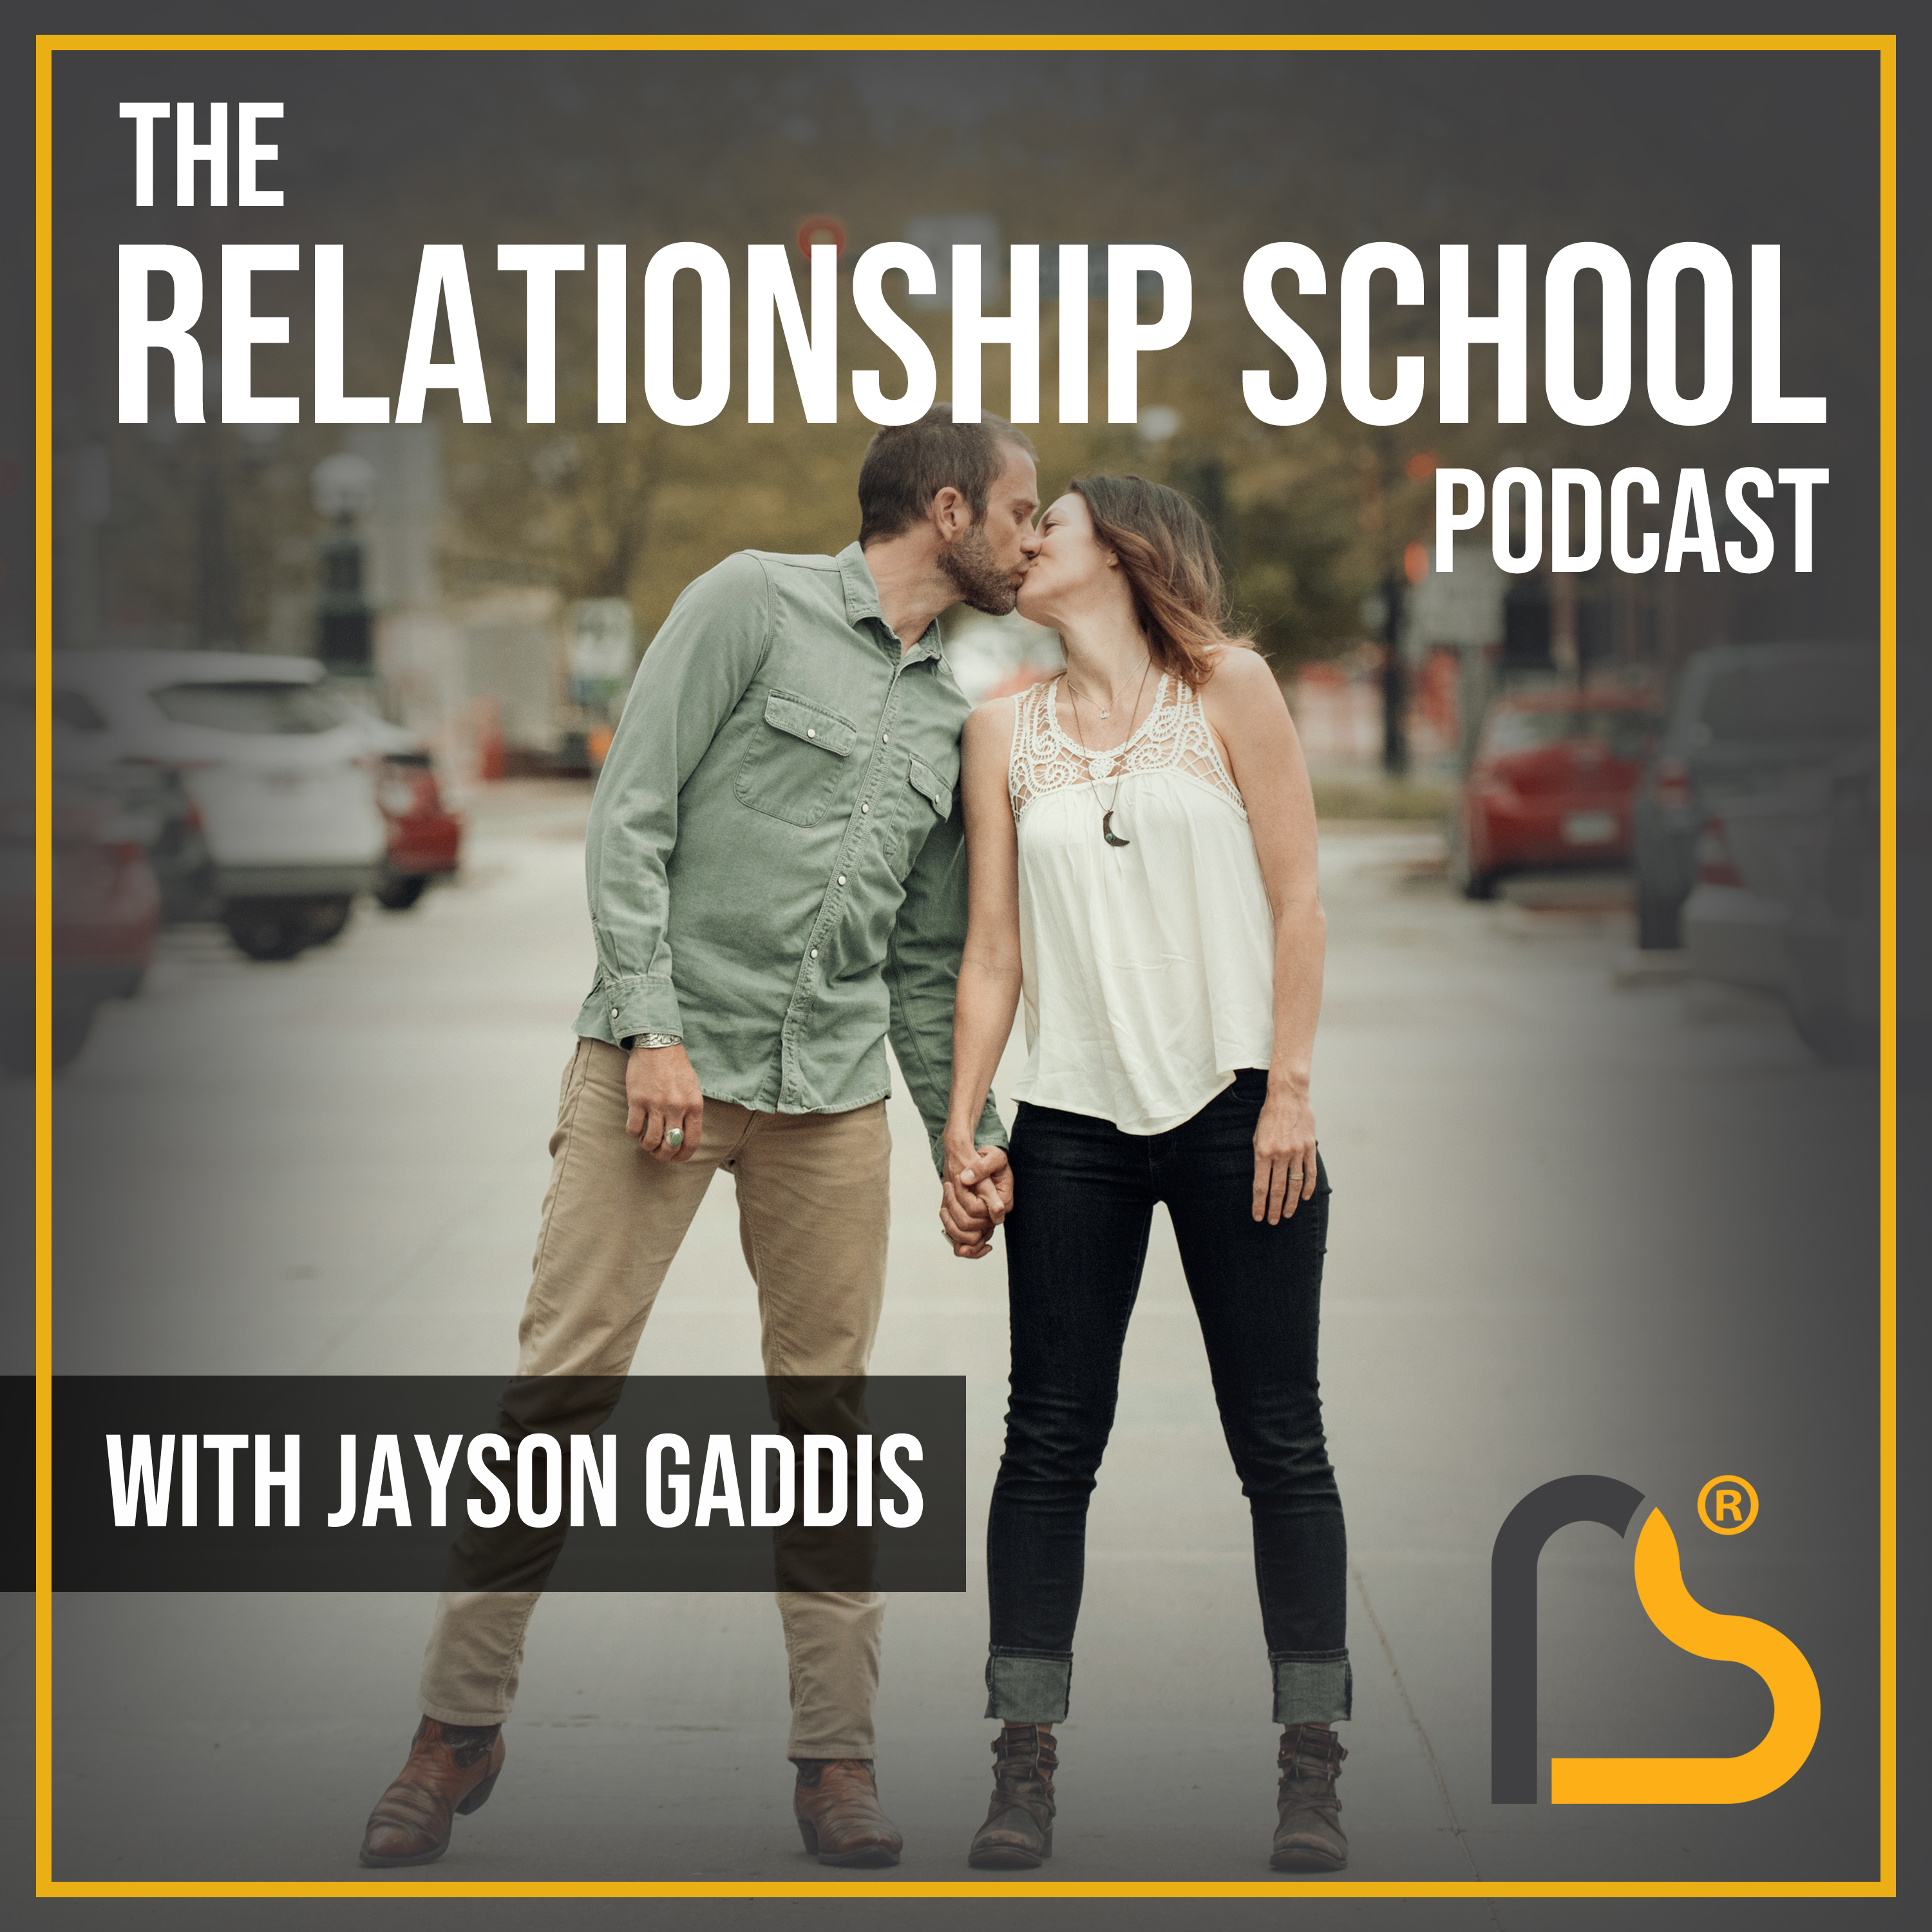 The Relationship School Podcast - Codependent Relationships: Signs, Symptoms, and How to Change It